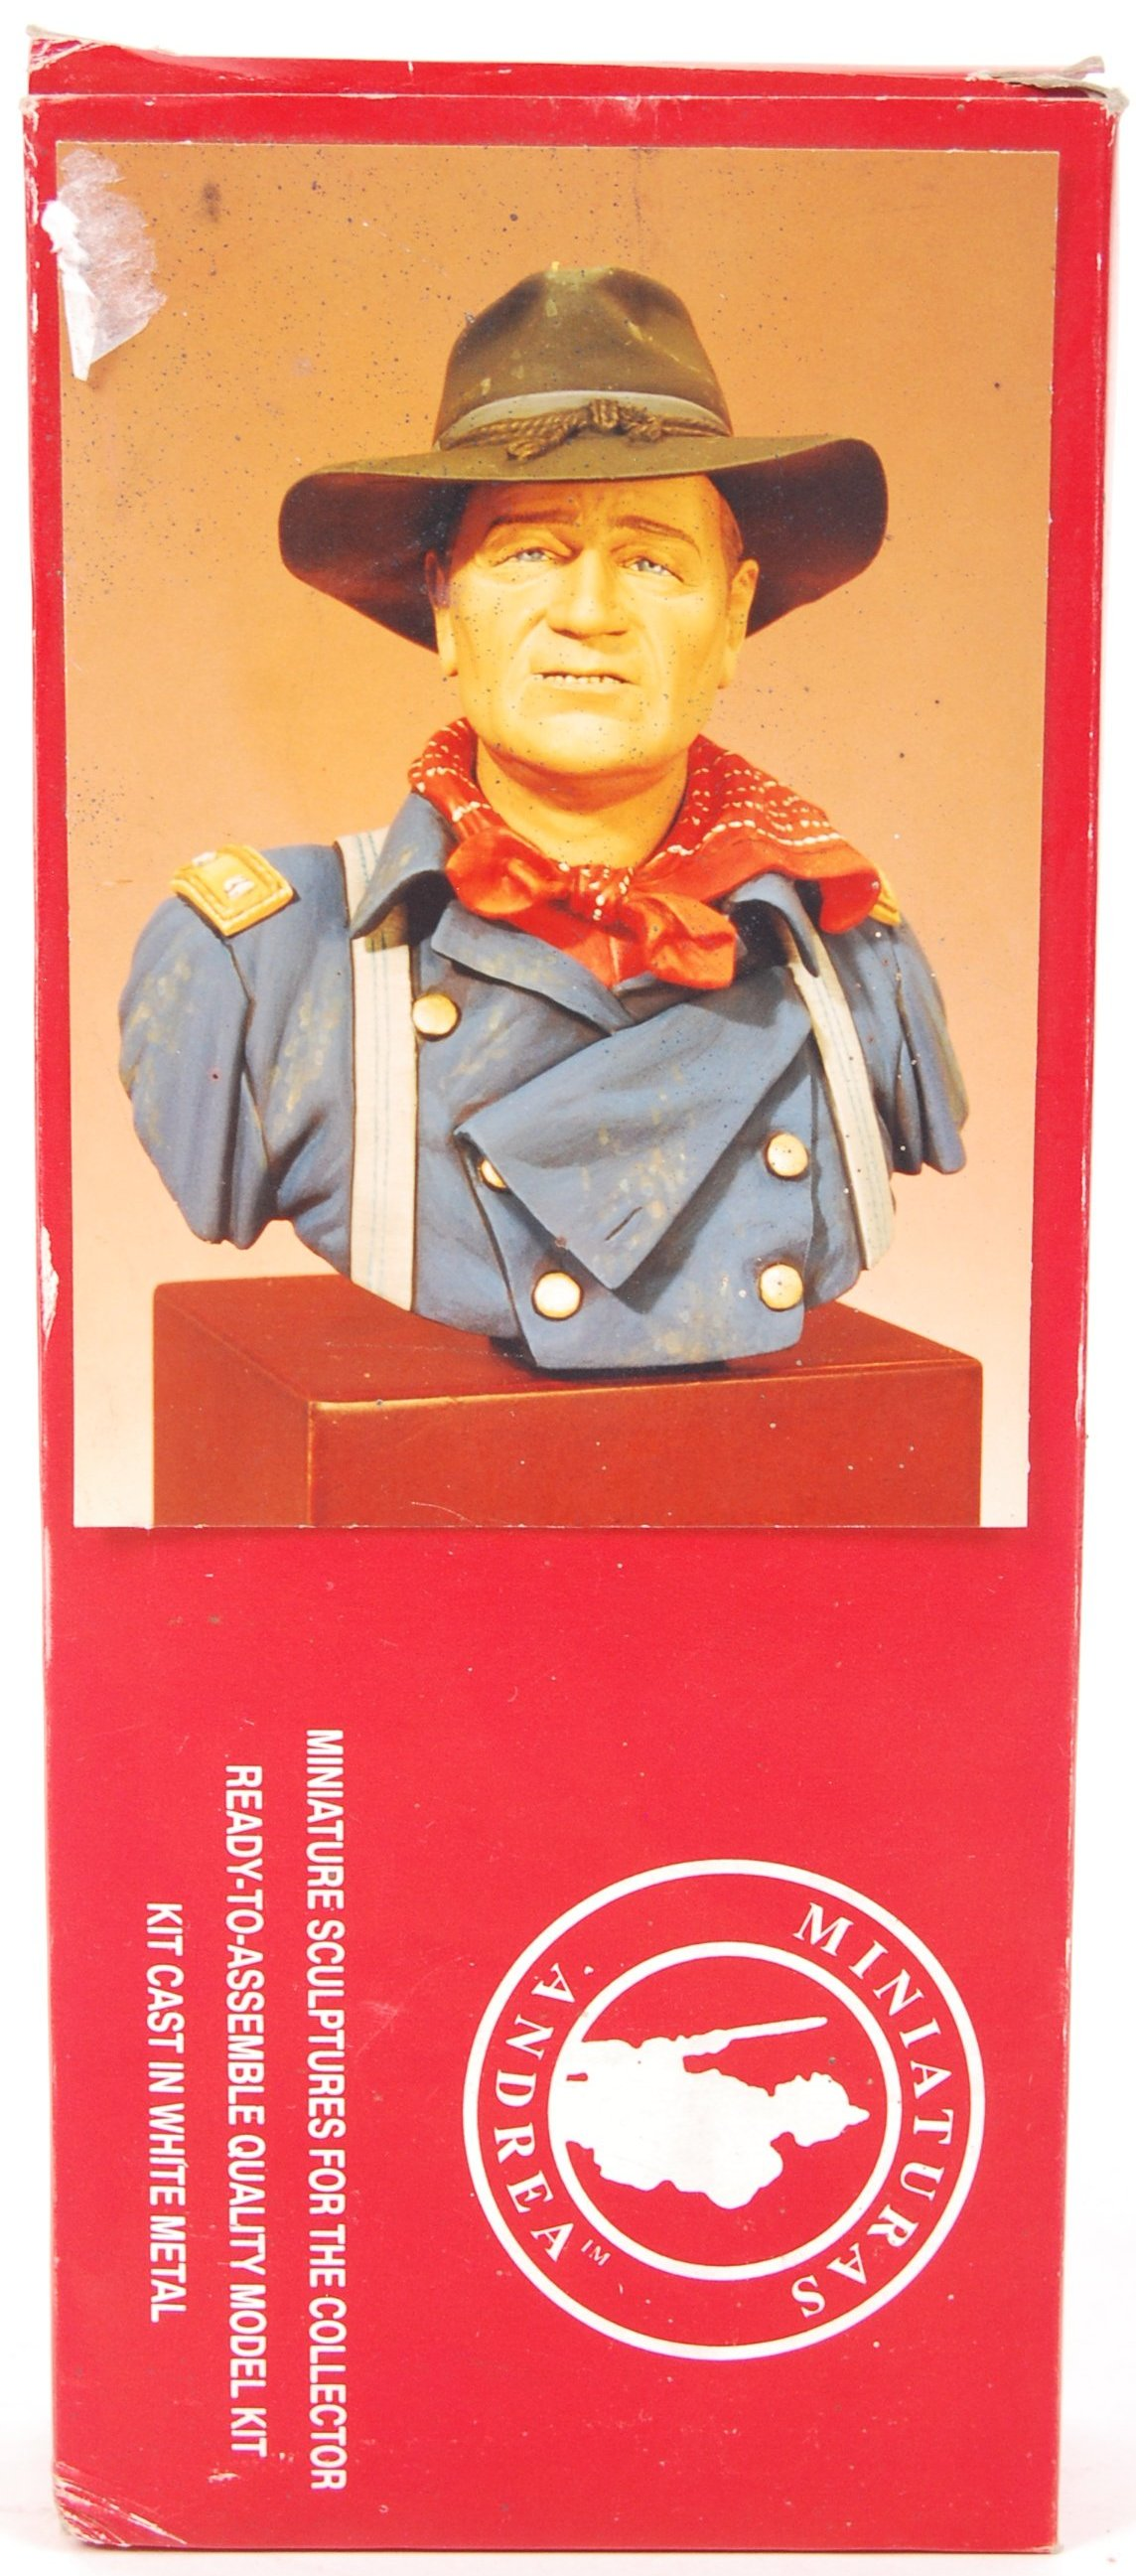 Lot 32 - ANDREA MINIATURES MADE 1:8 SCALE MODEL KIT BUST OF JOHN WAYNE